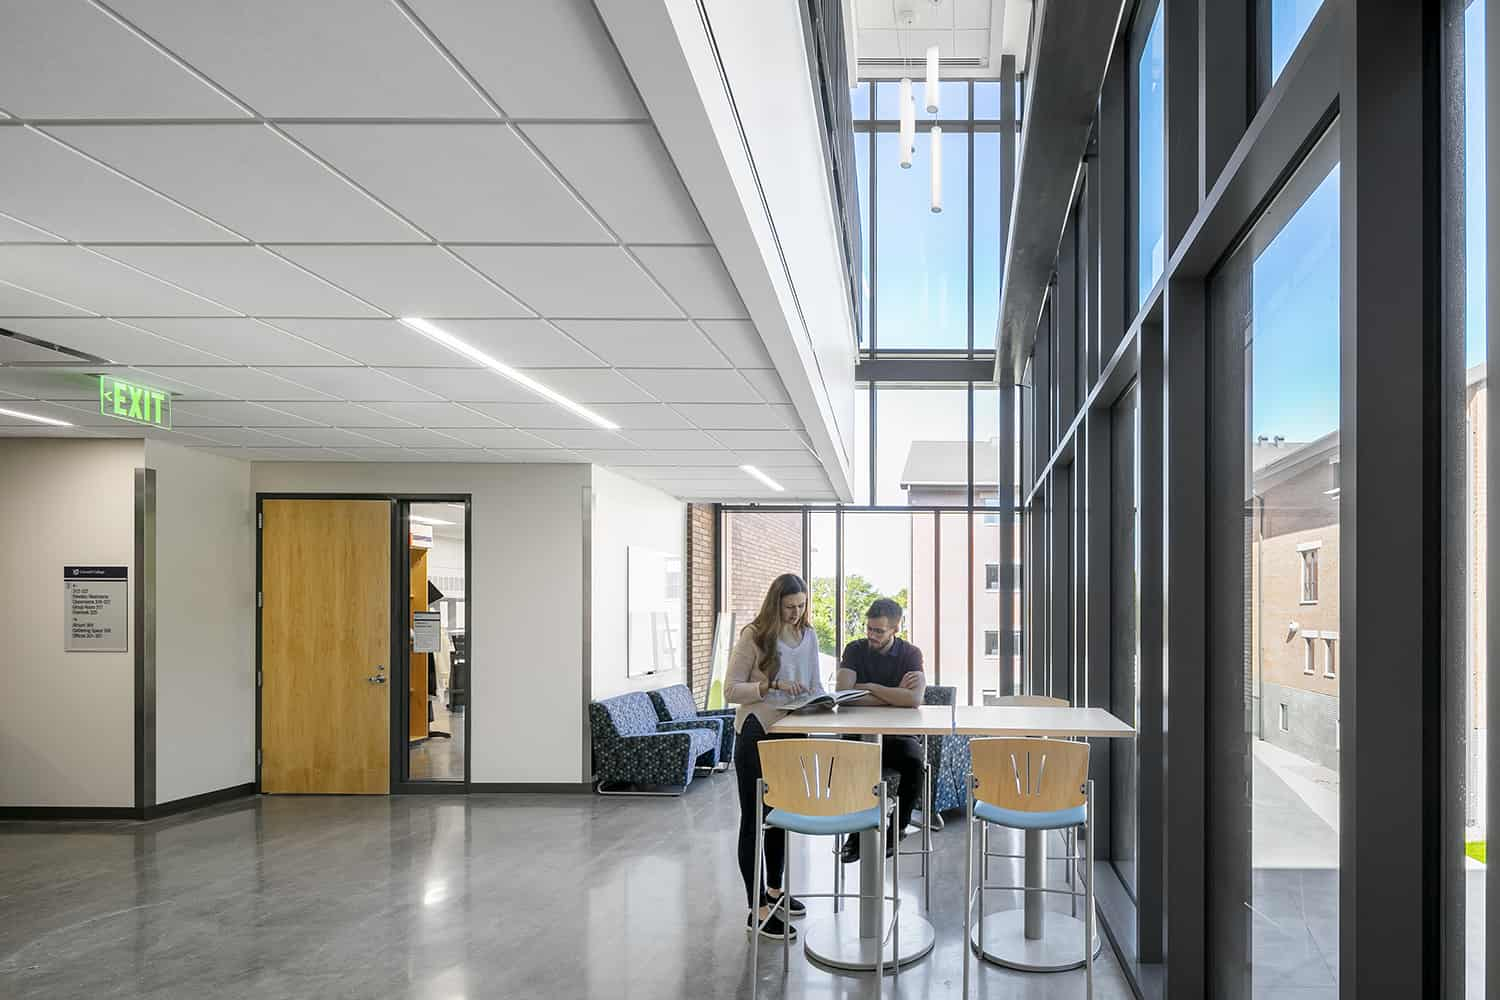 An open study area located in a classroom corridor, with two-story windows.